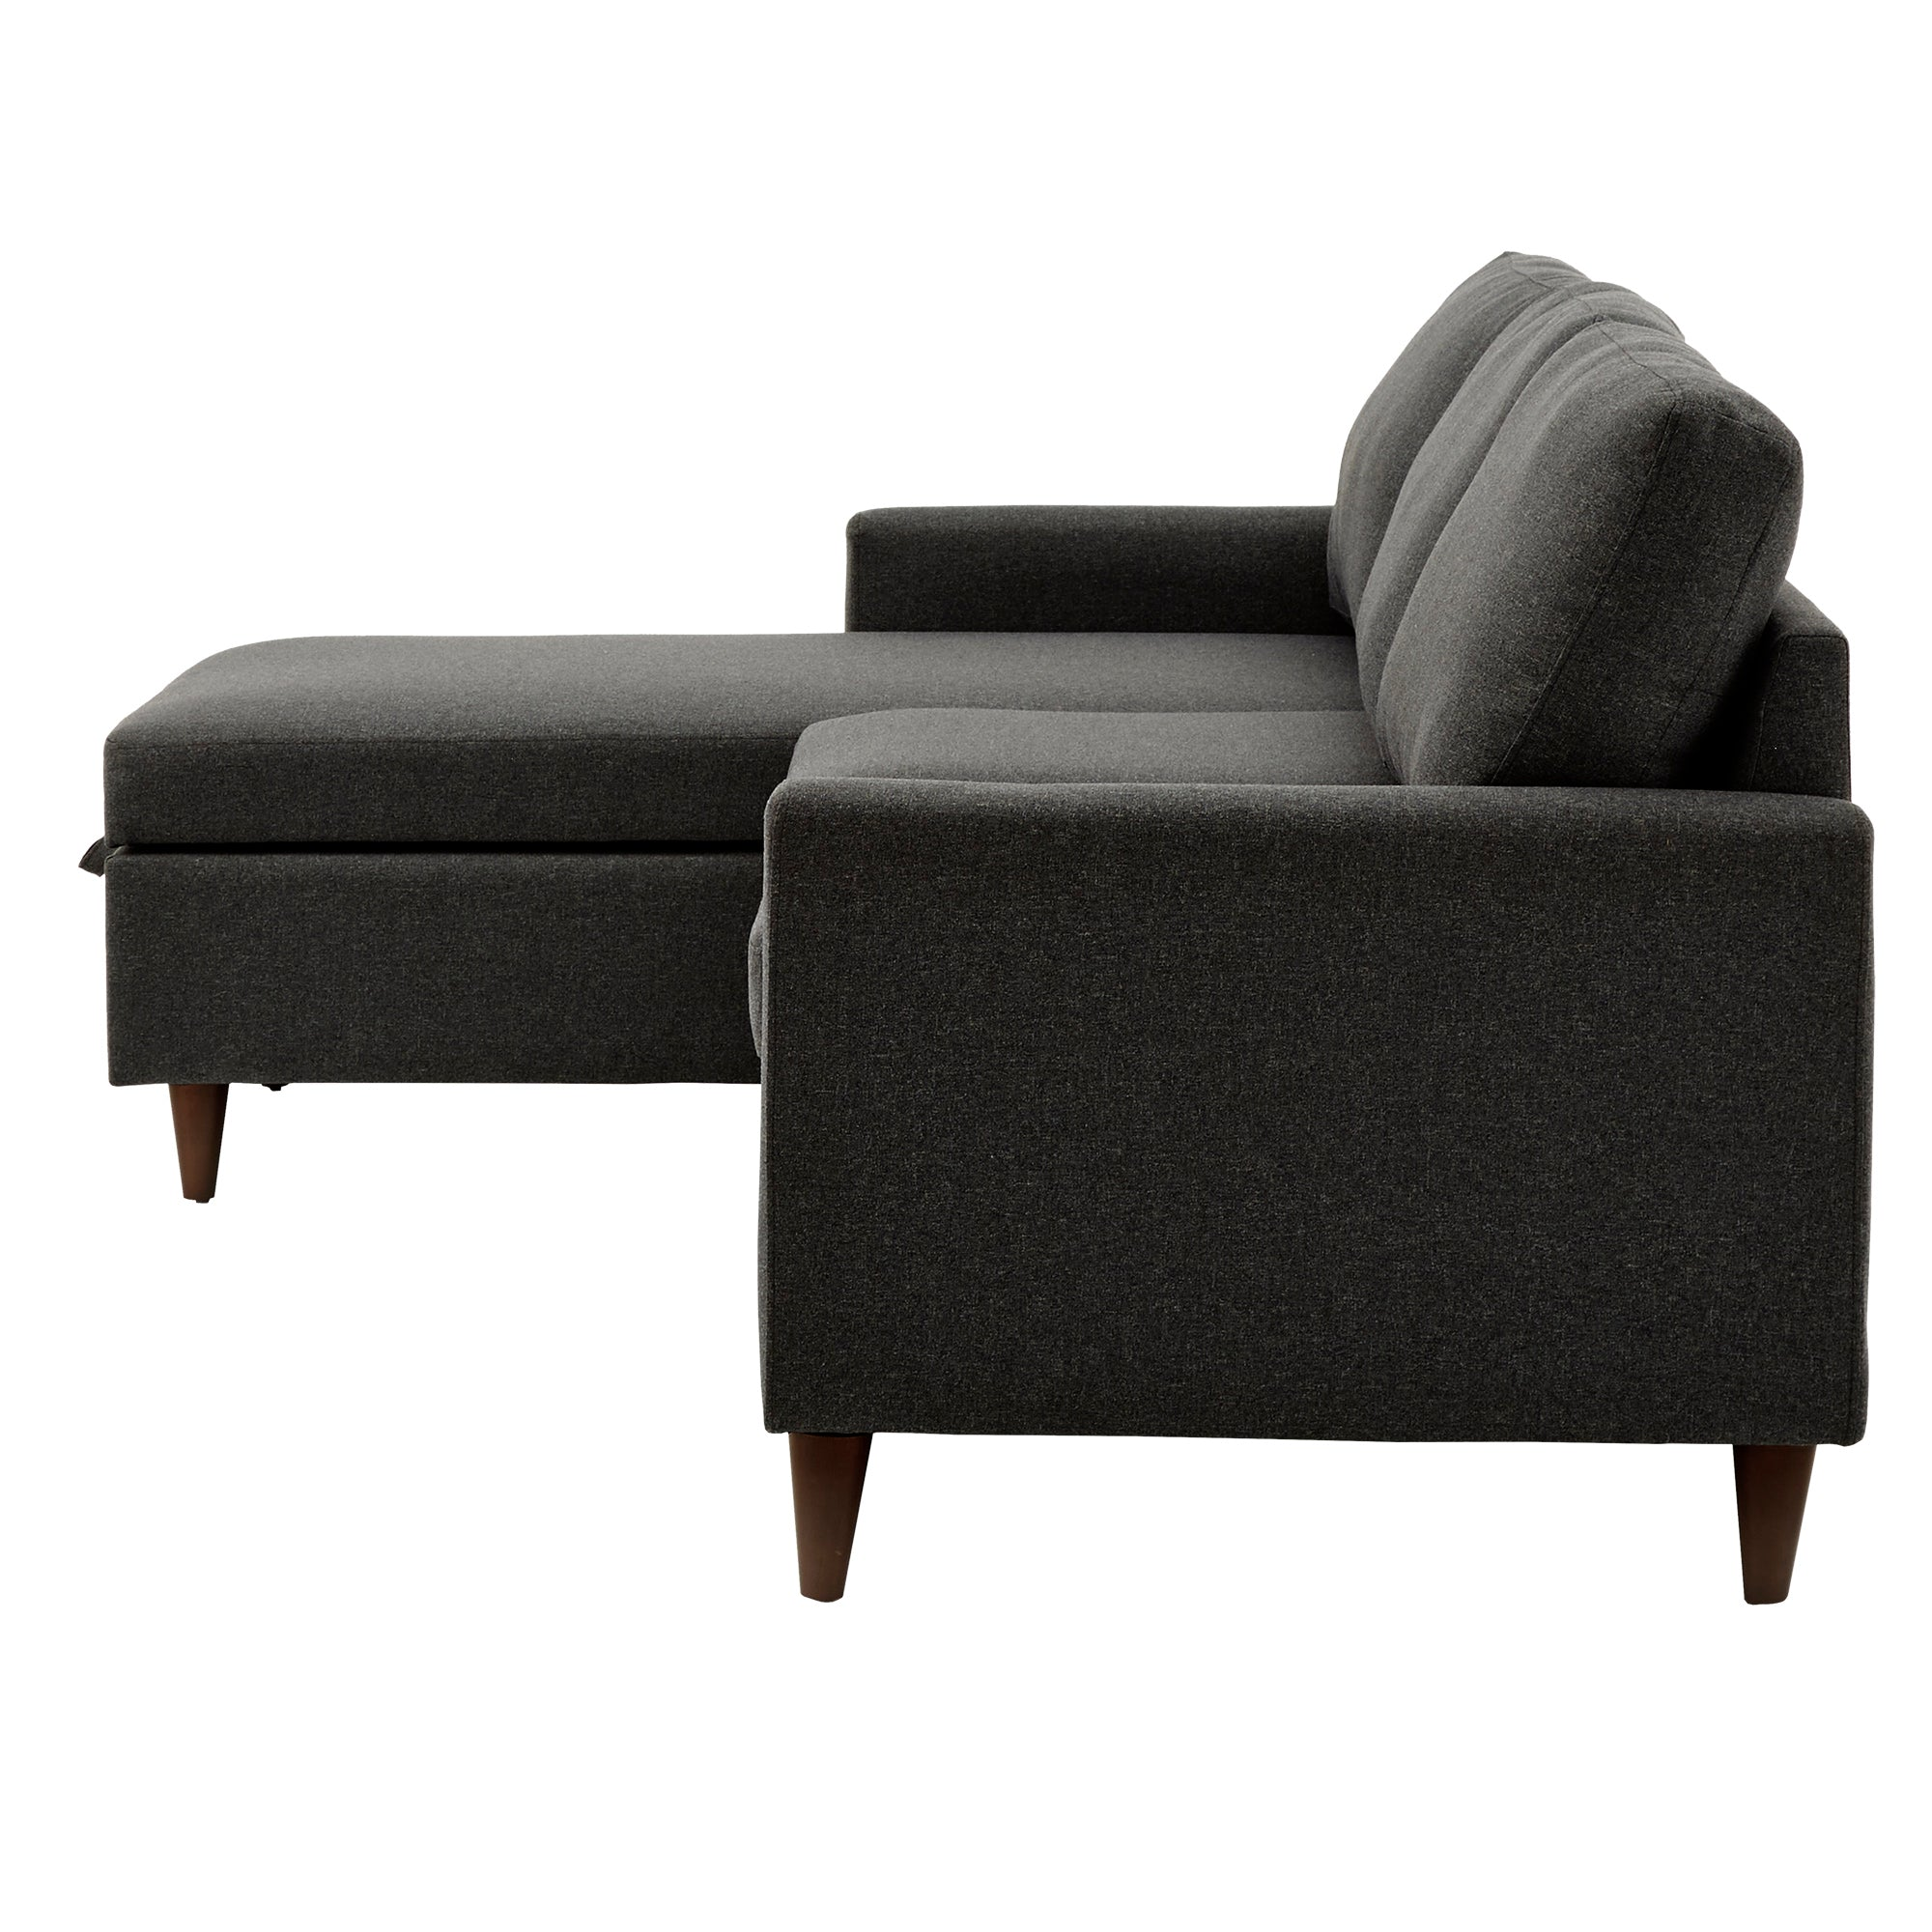 Walnut Finish Fabric Sectional Sofa with Reversible Storage Chaise - Dark Grey